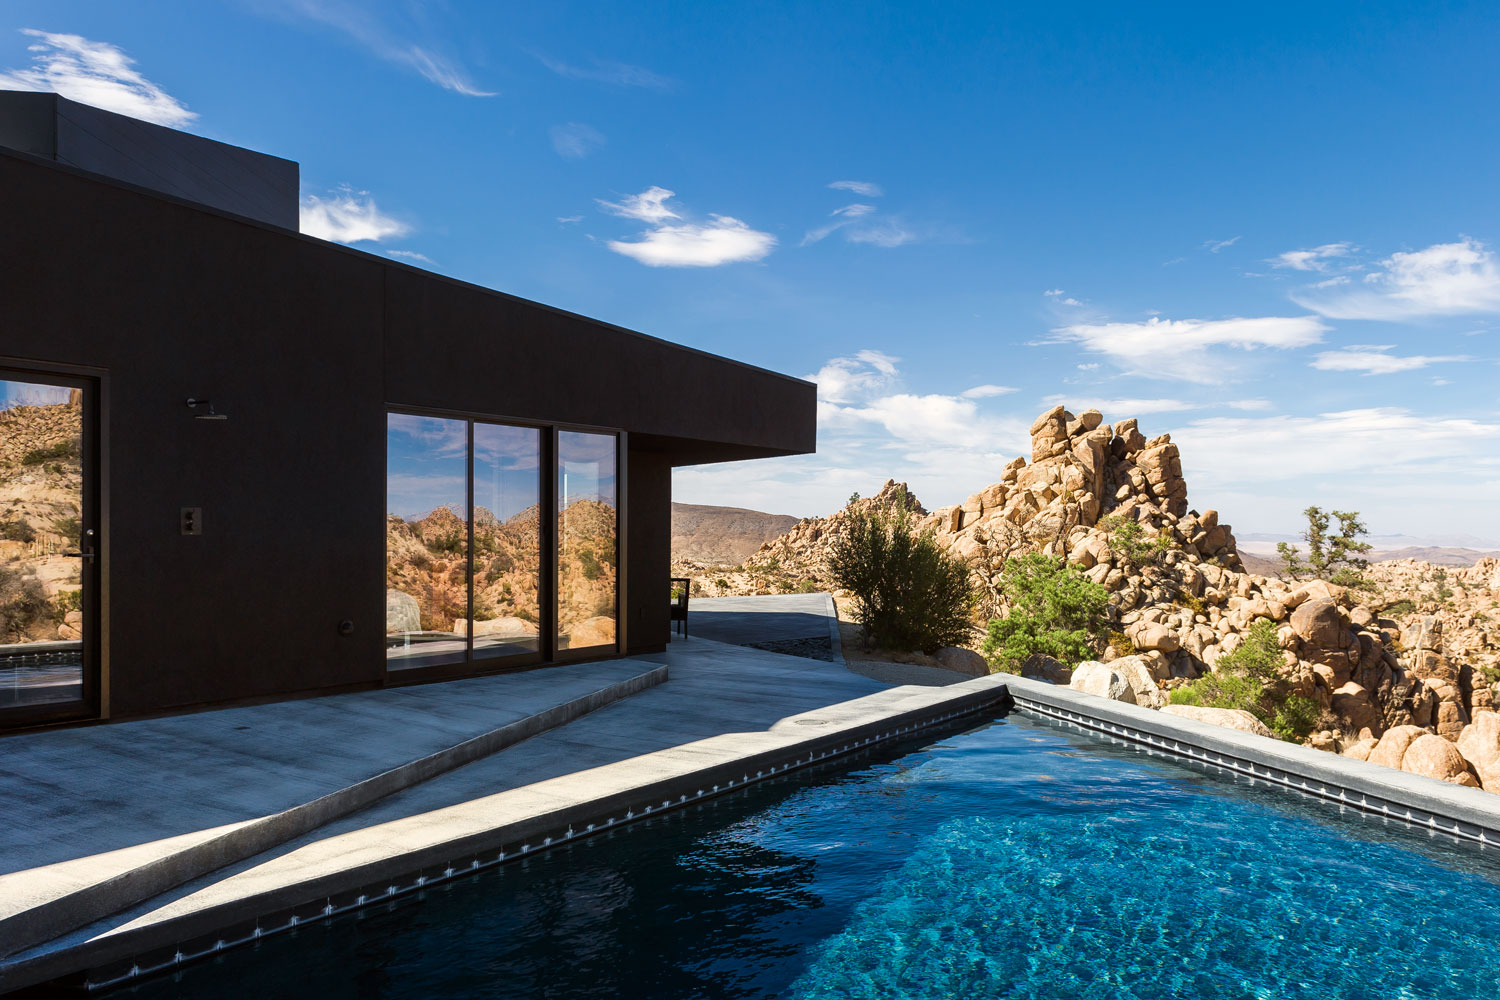 View from the pool at the Yucca Valley house